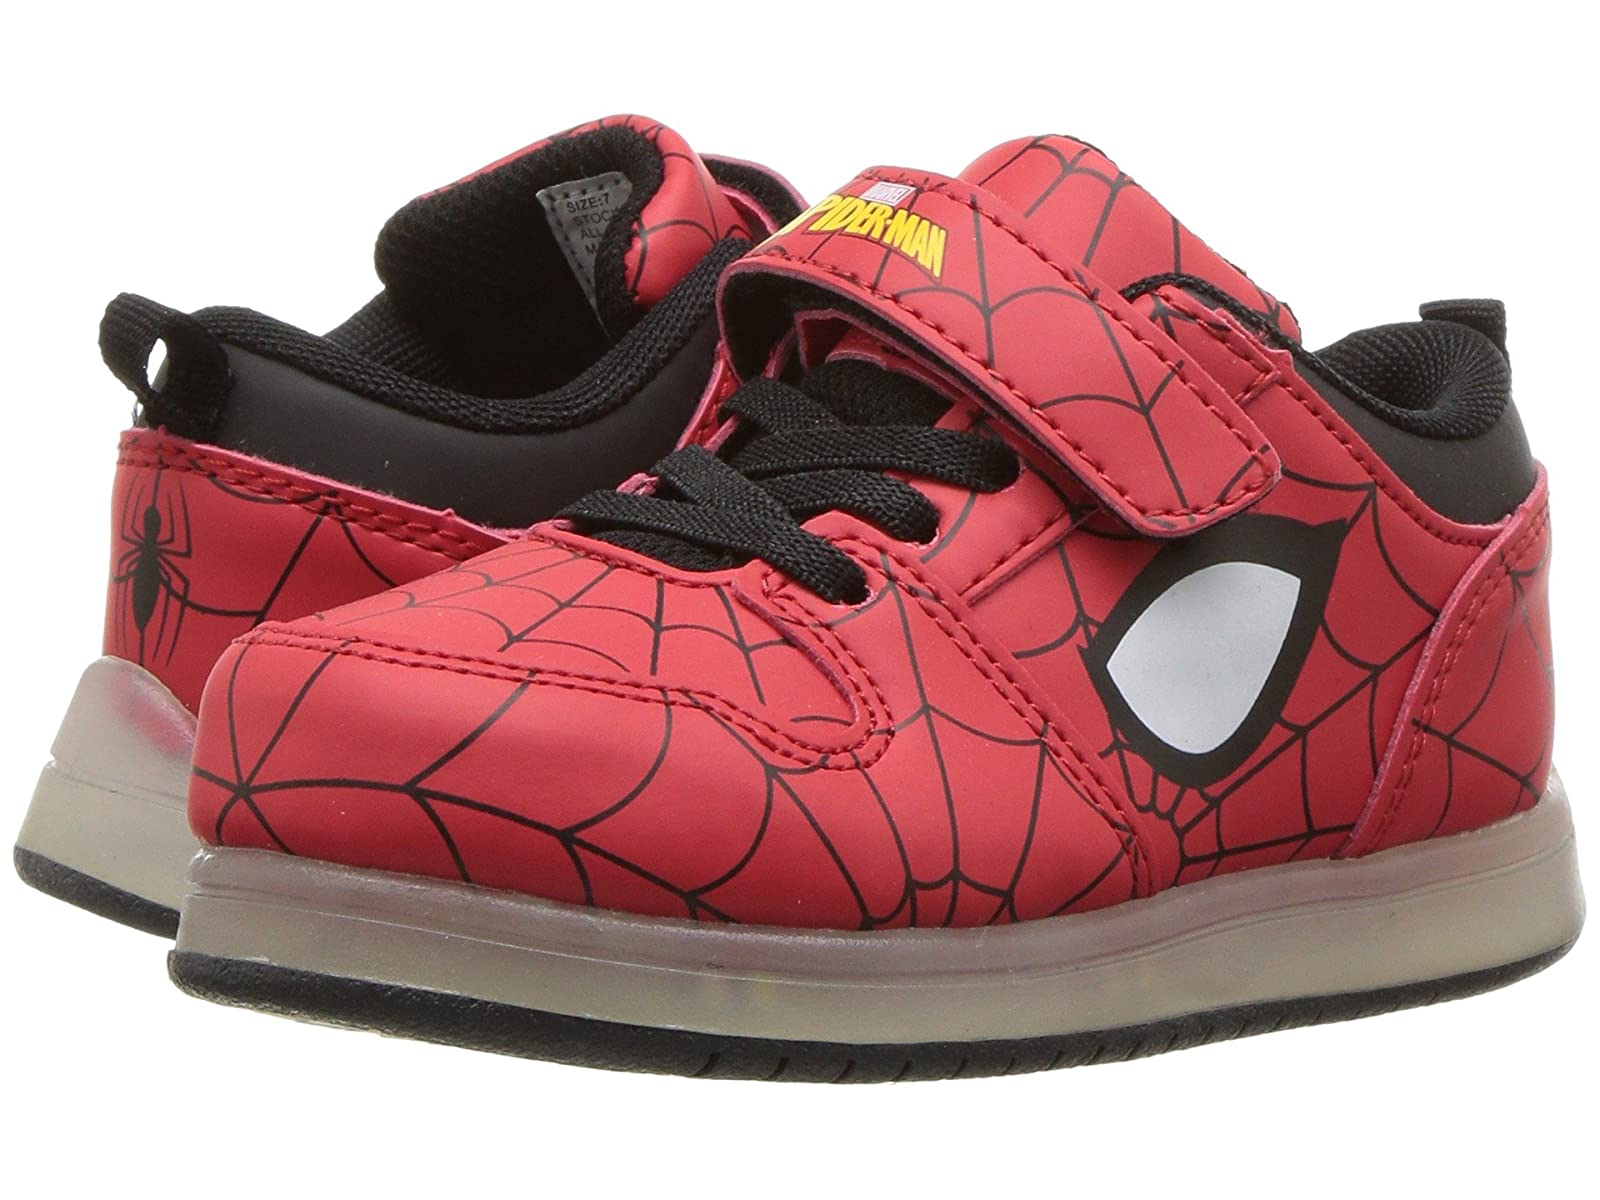 Favorite Characters Spiderman™ Motion Lighted Sneaker (Toddler/Little Kid)Atmospheric grades have affordable shoes